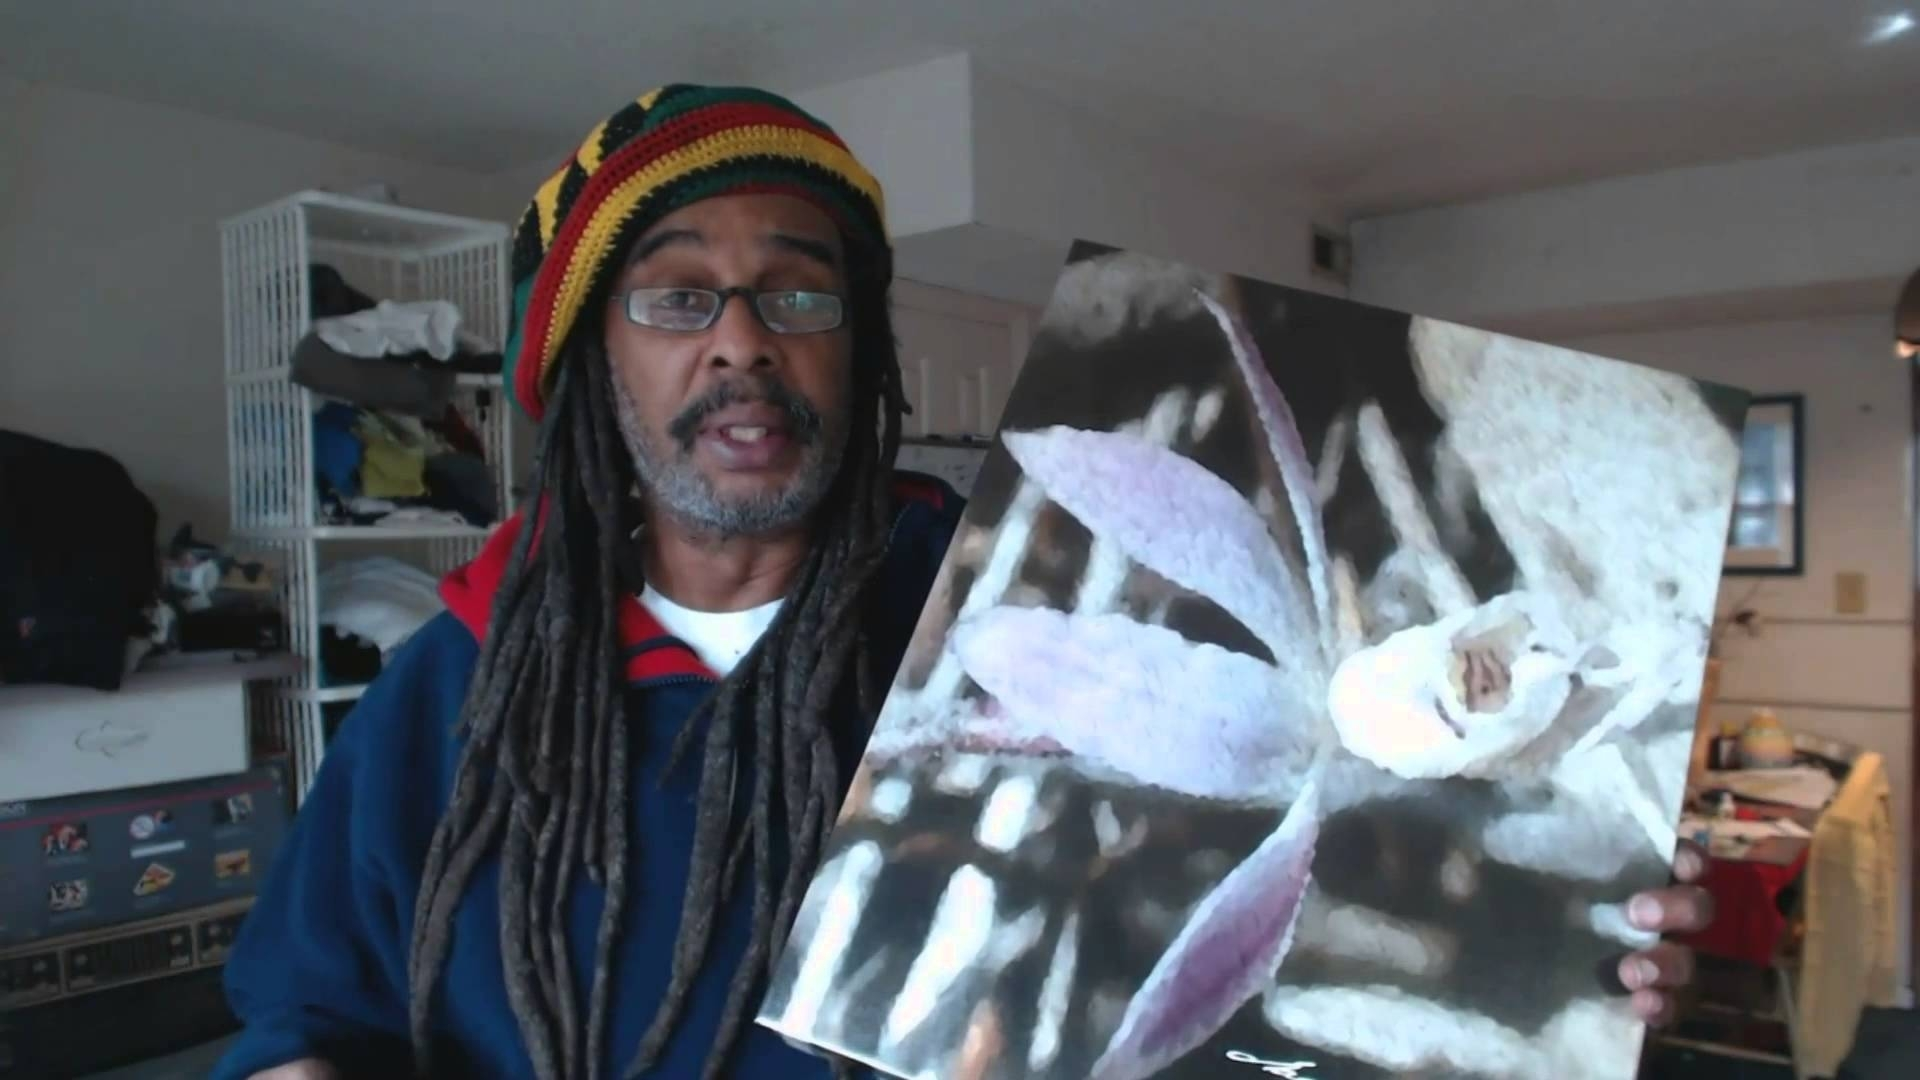 Picasso Goes To Walmart Unboxing Canvas And Wall Art – Youtube Throughout Best And Newest Wall Art At Walmart (View 14 of 20)